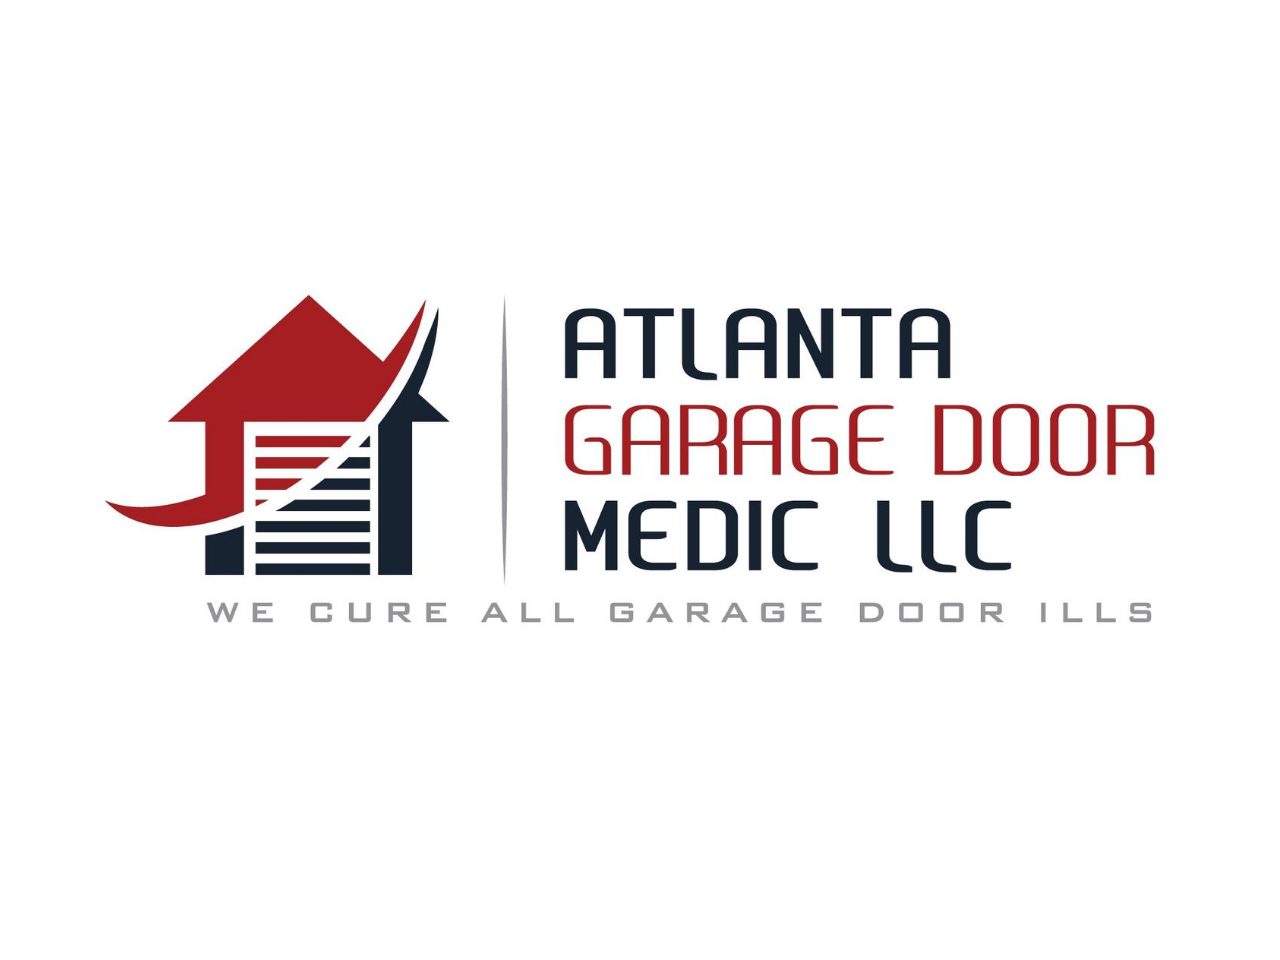 Atlanta Garage Door Medic LLC